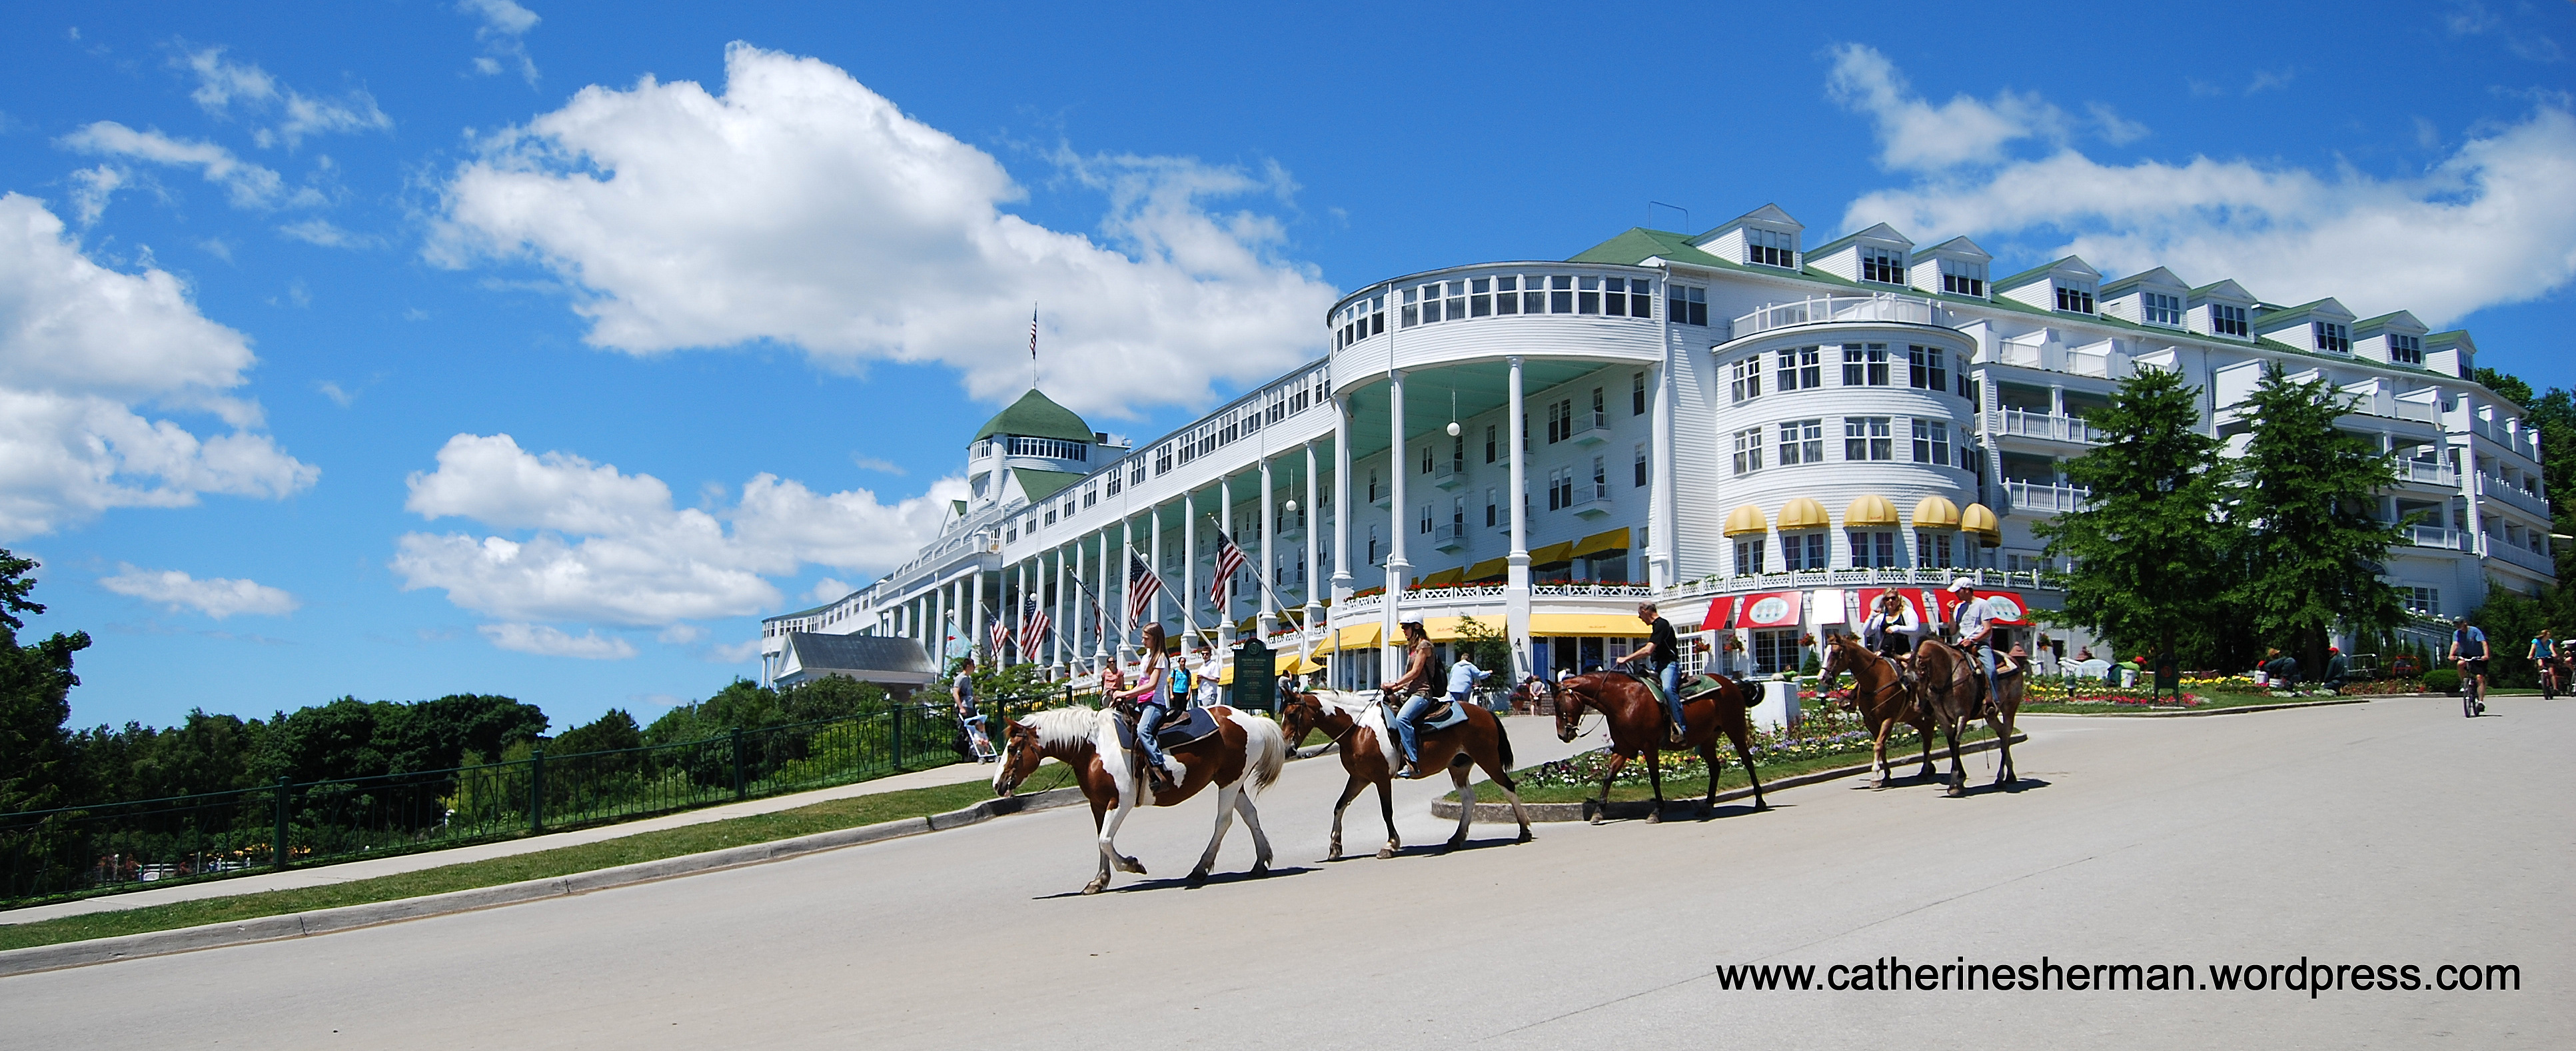 Grand hotel mackinac island michigan catherine sherman for Grand hotel